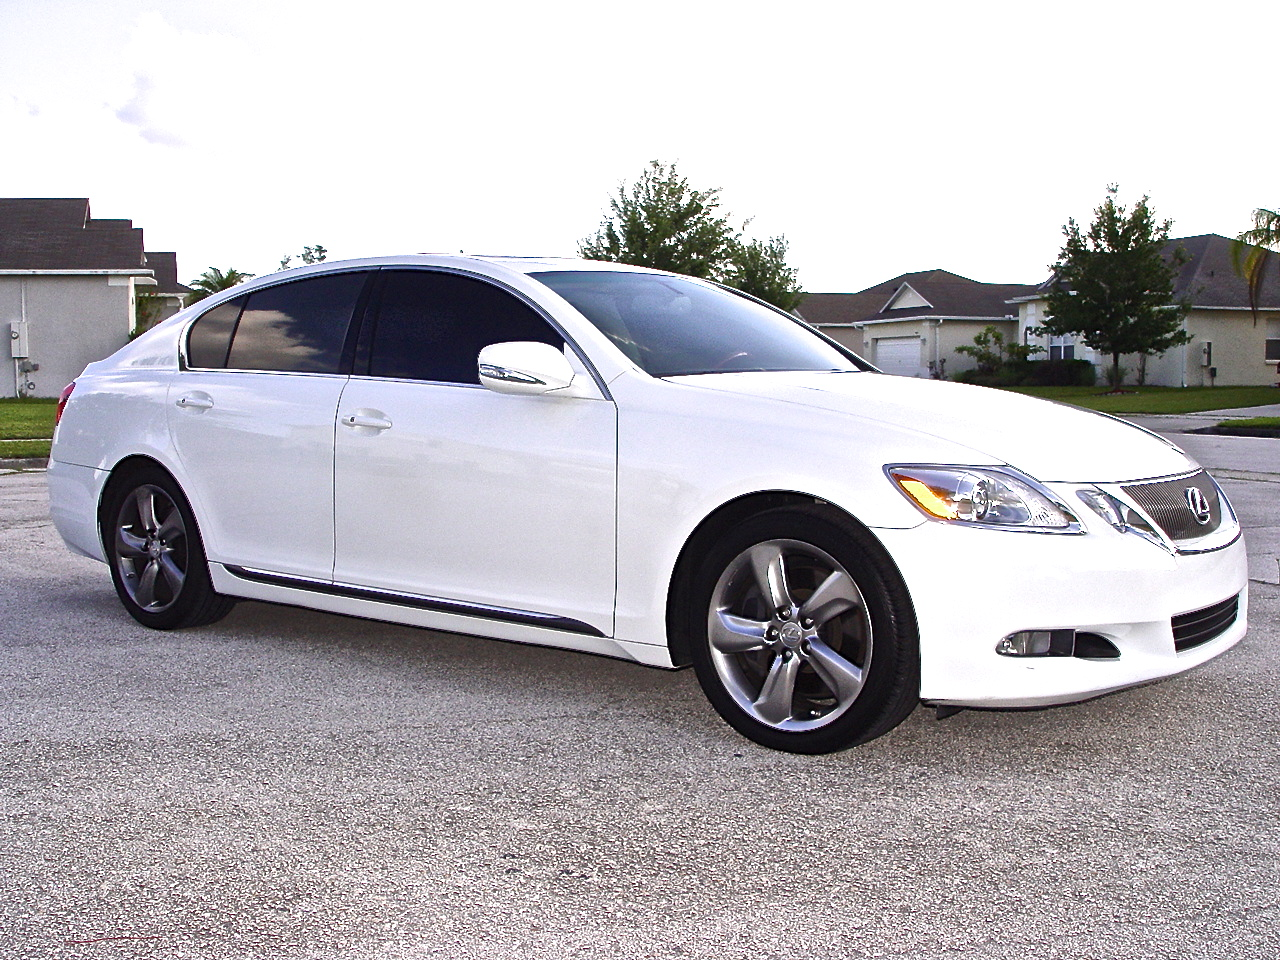 2011 lexus gs 350 pictures cargurus. Black Bedroom Furniture Sets. Home Design Ideas